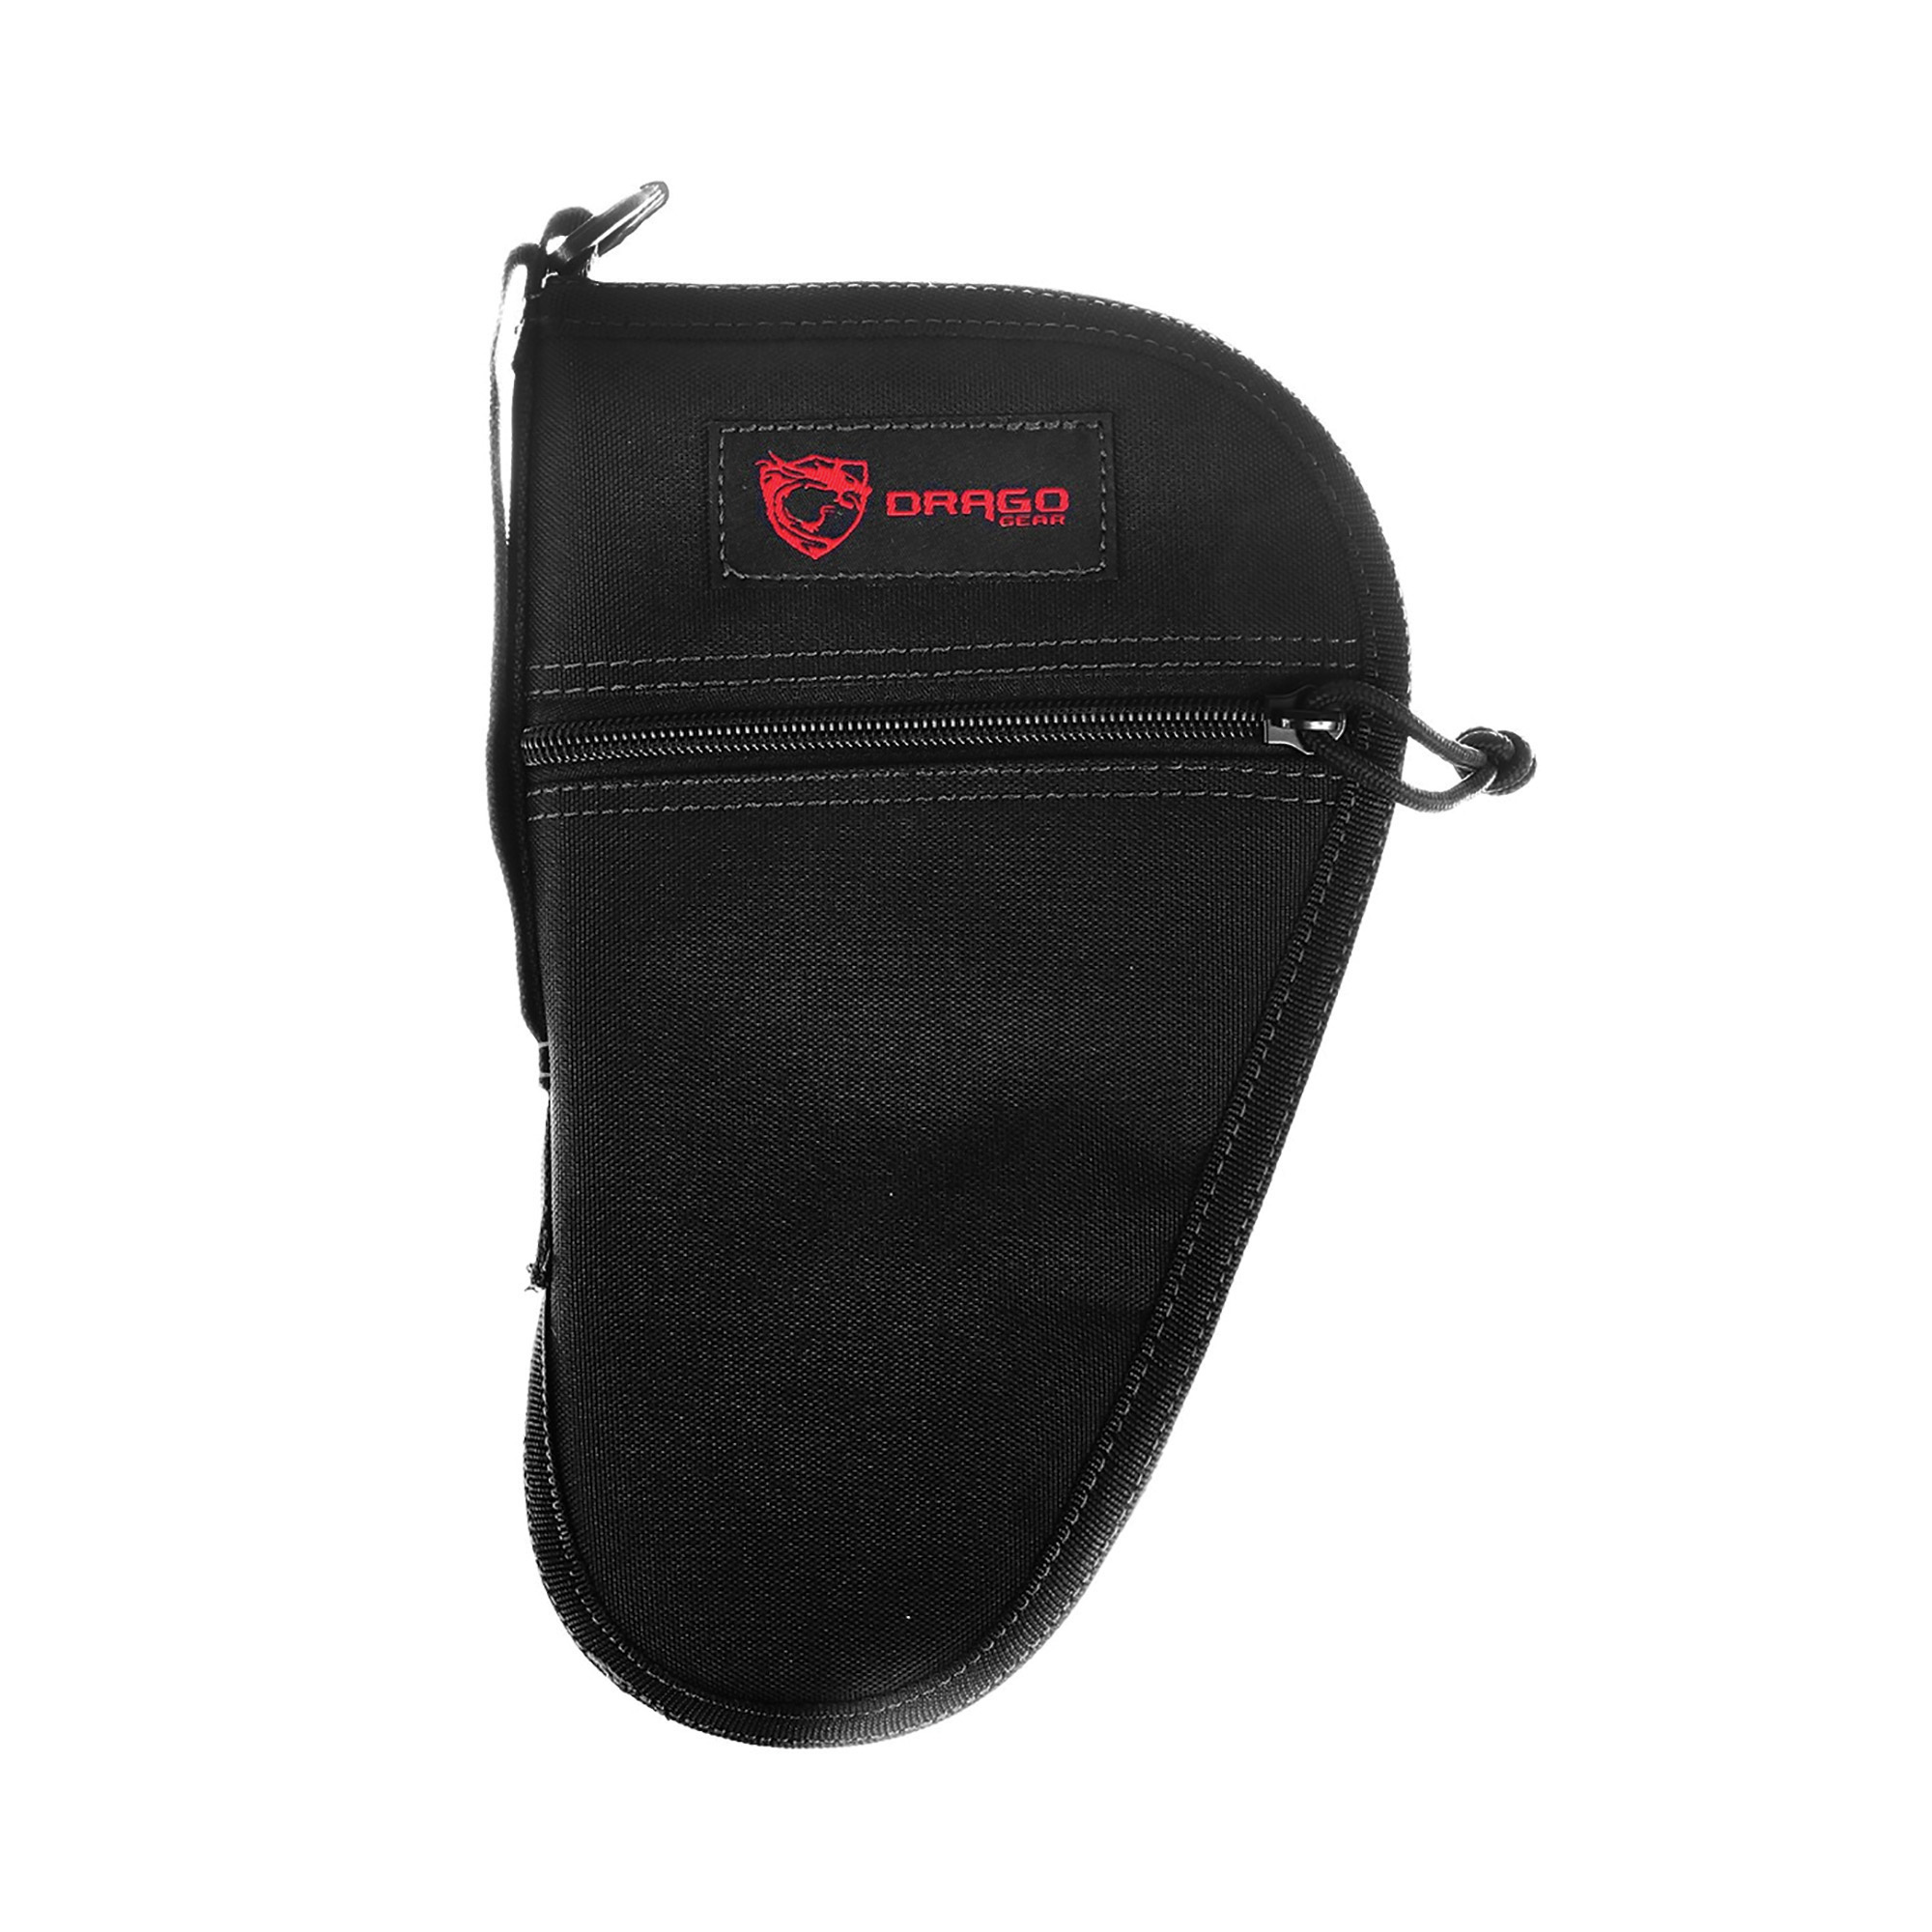 Drago Pistol Cases are designed to optimally secure and protect your handguns.